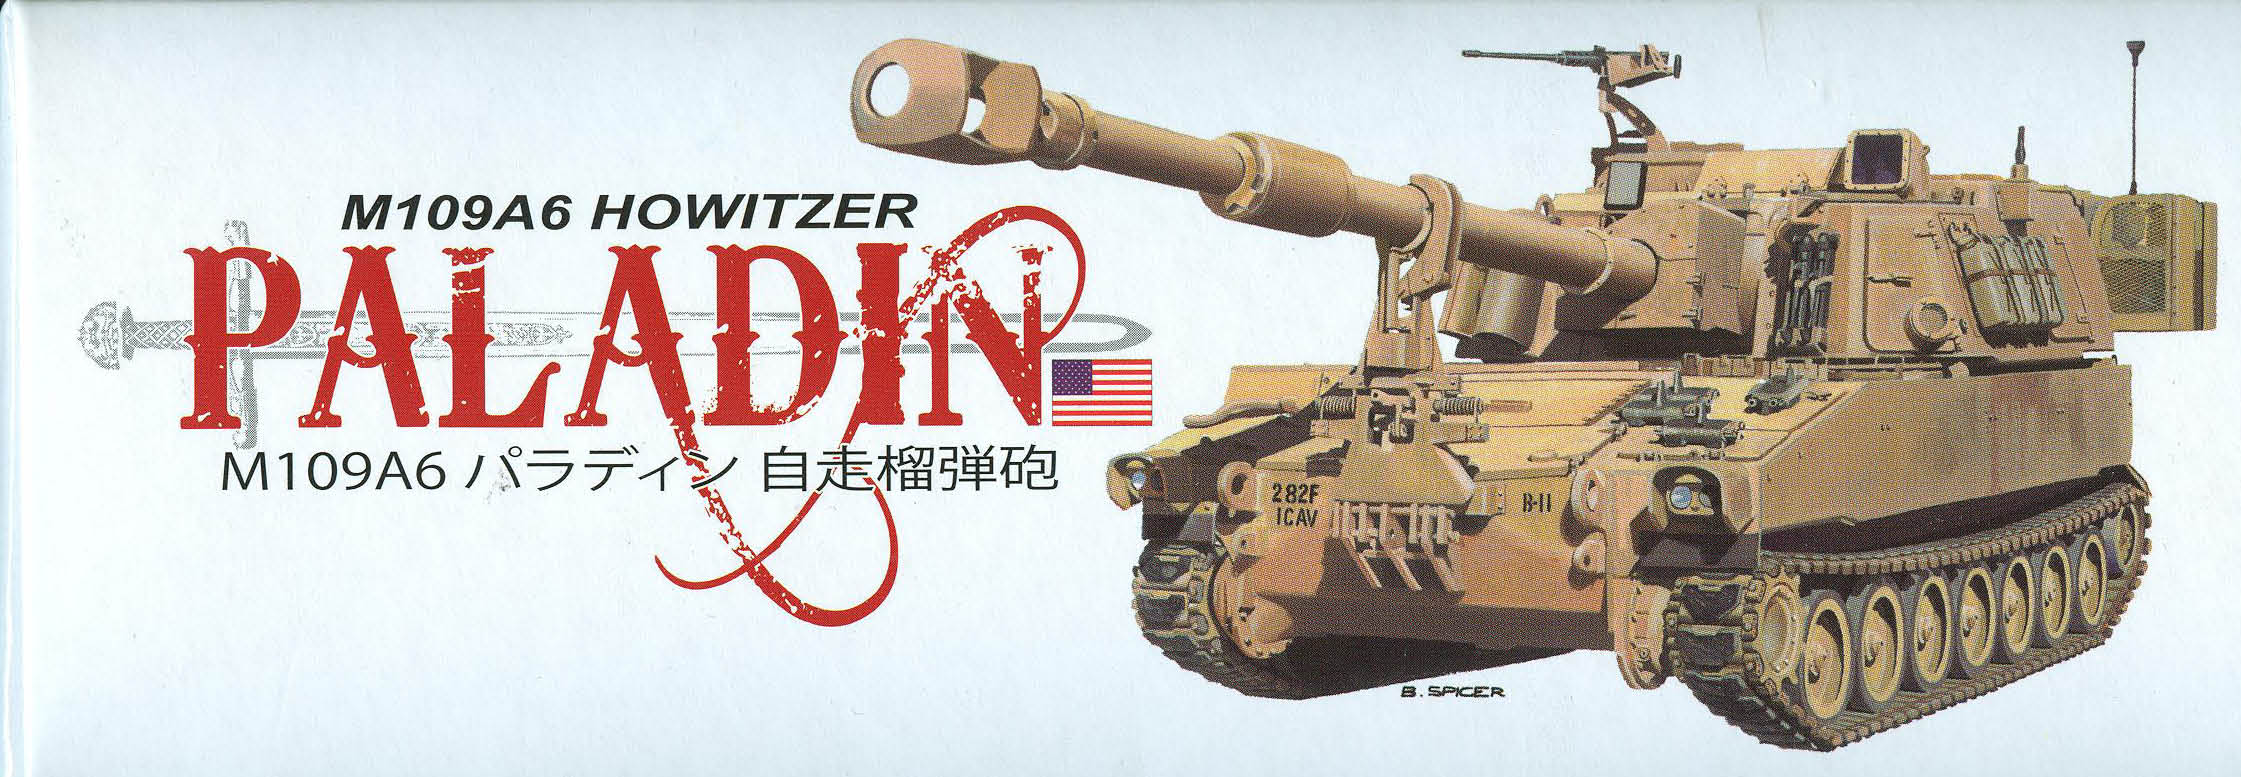 Review afv club 1 35 scale m109a6 paladin howitzer kit review afv club